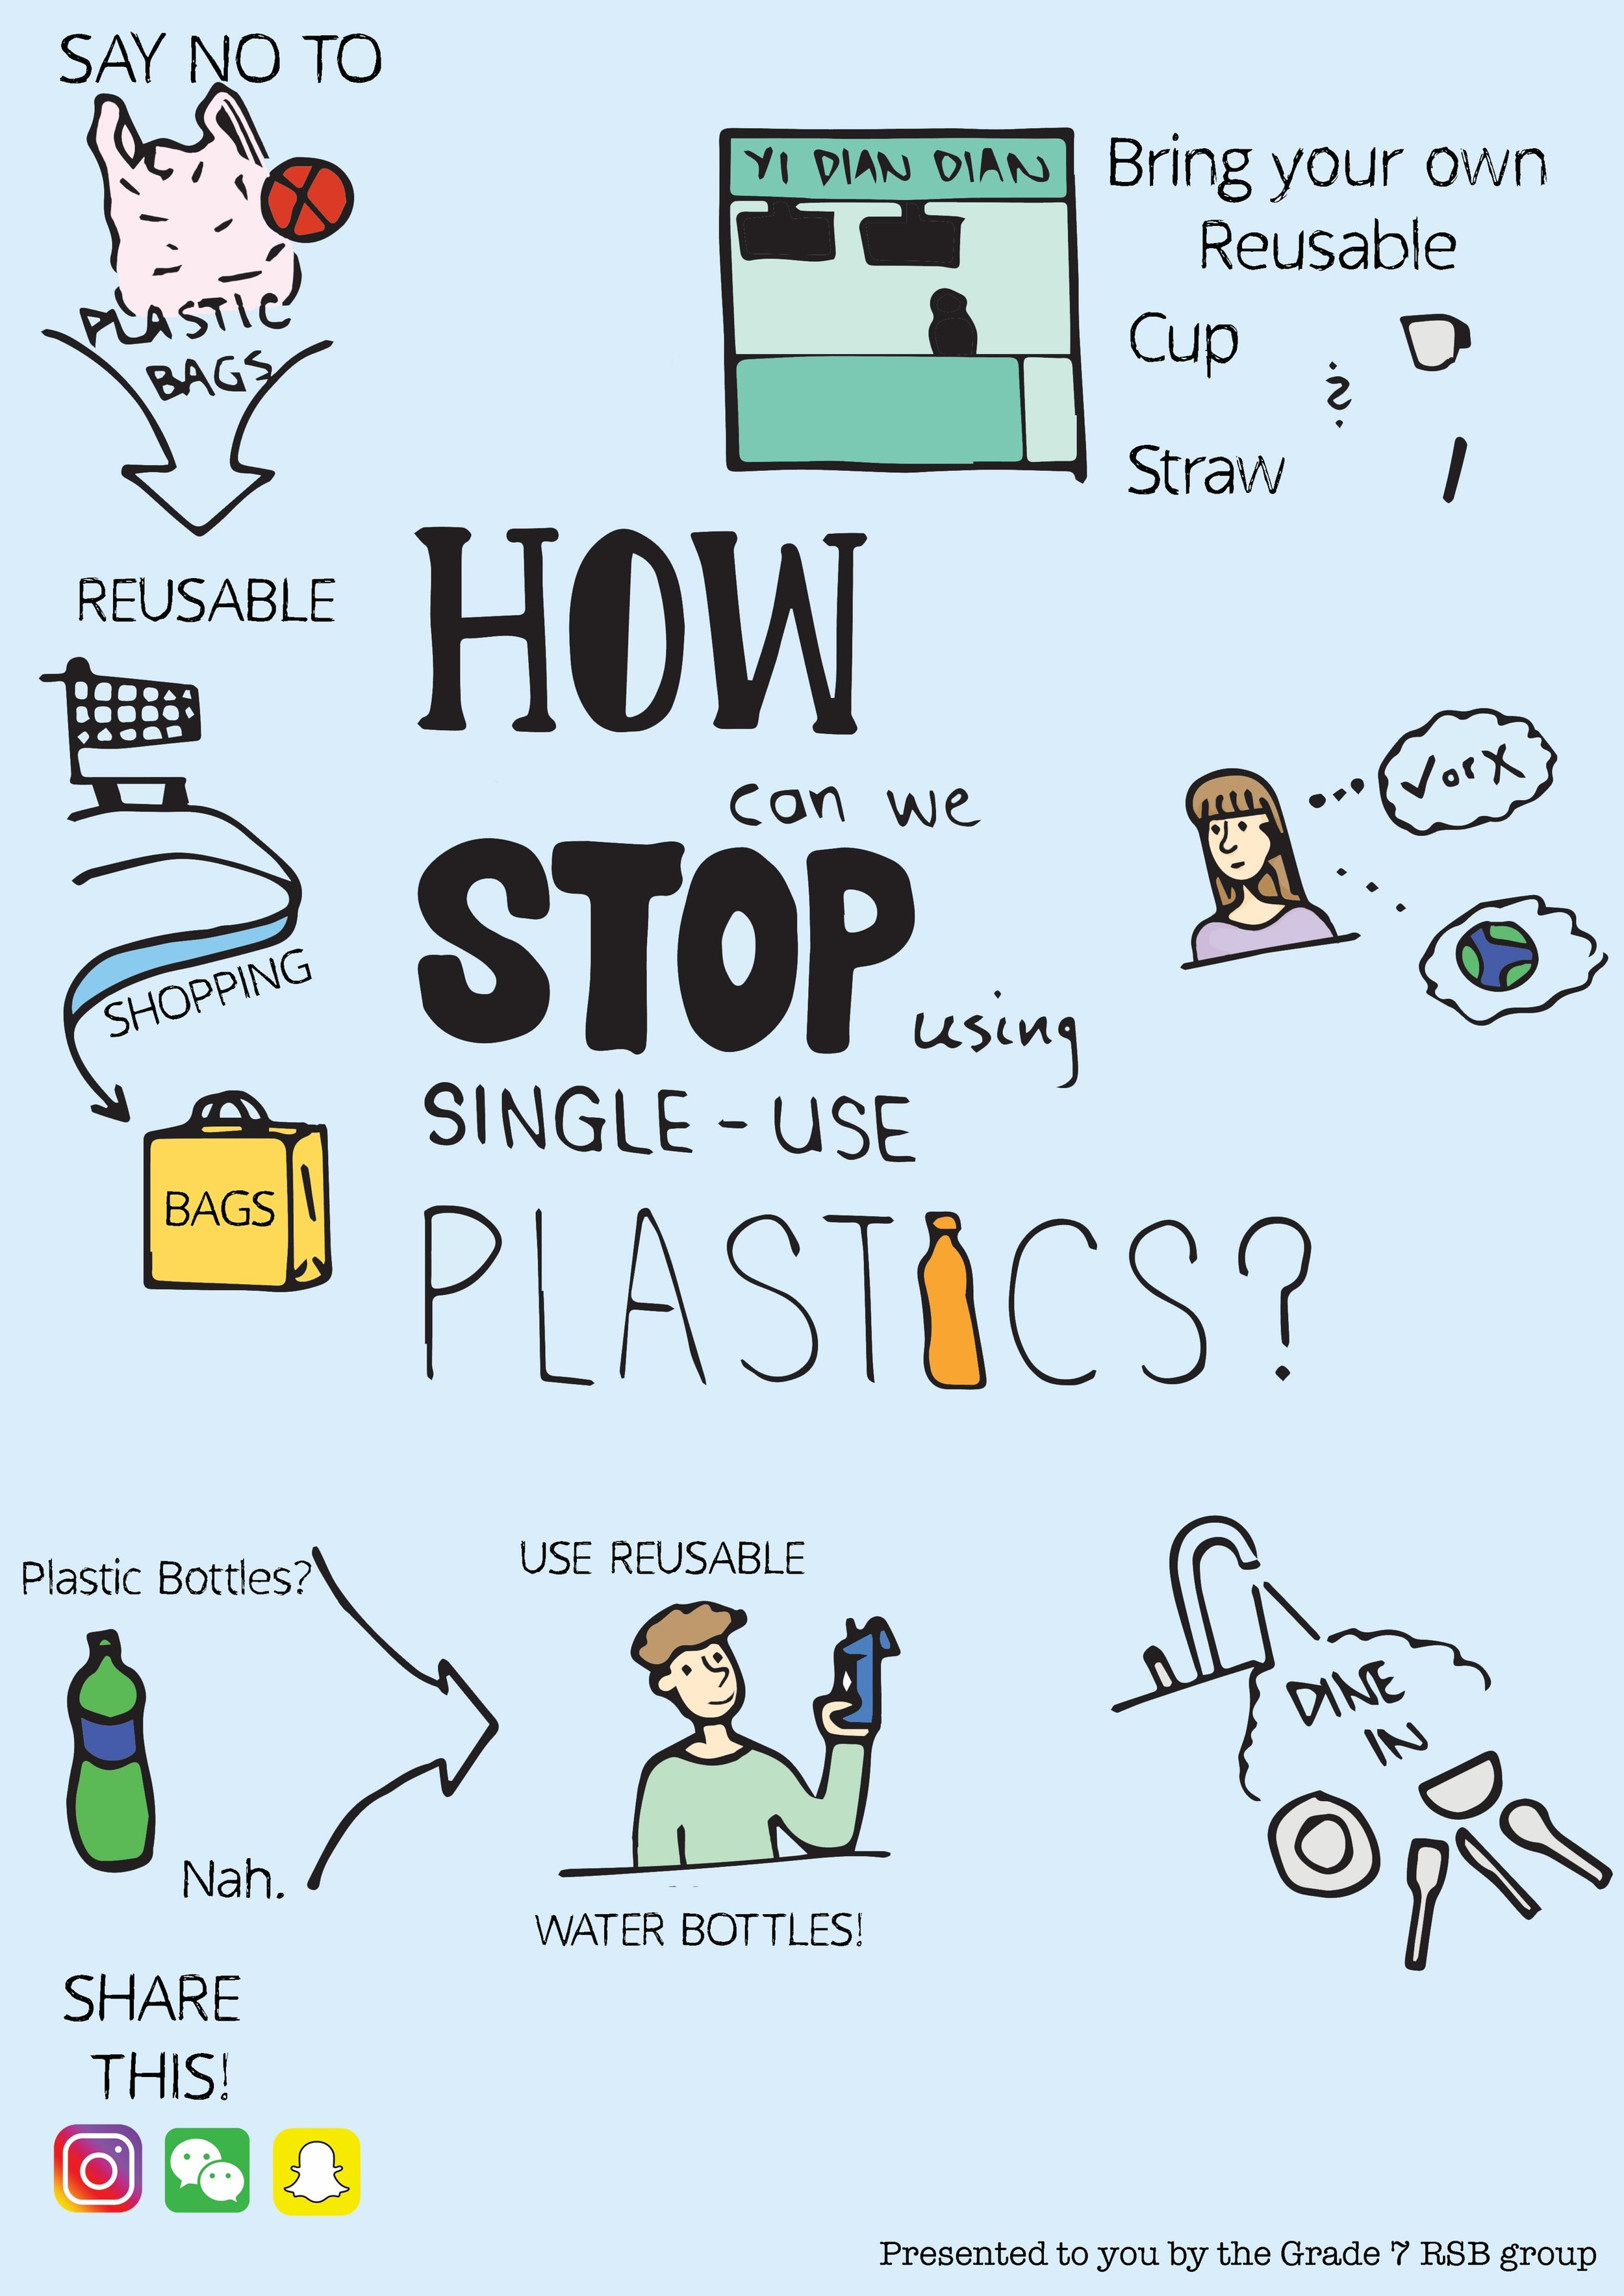 A poster designed by grade 7 RSB students to advocate for awareness about single-use plastics.